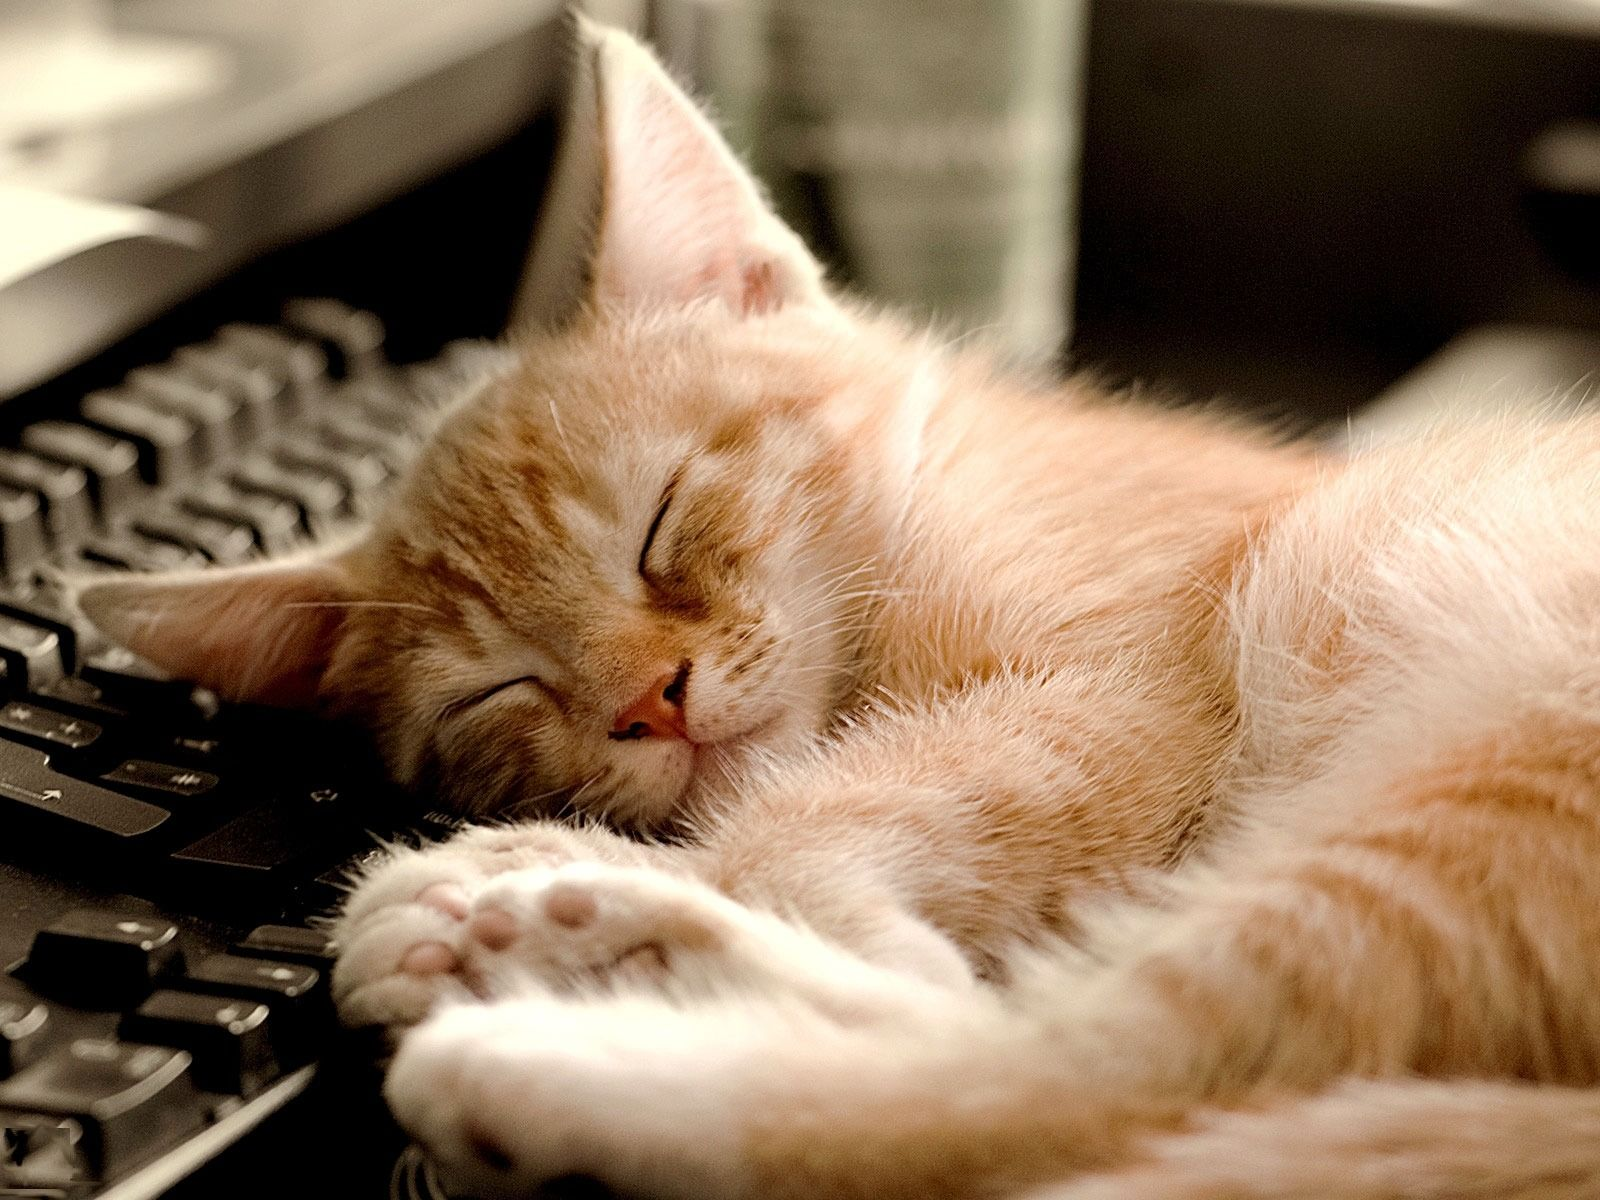 New Research Provides Insight as to Why Cats Sleep So Much